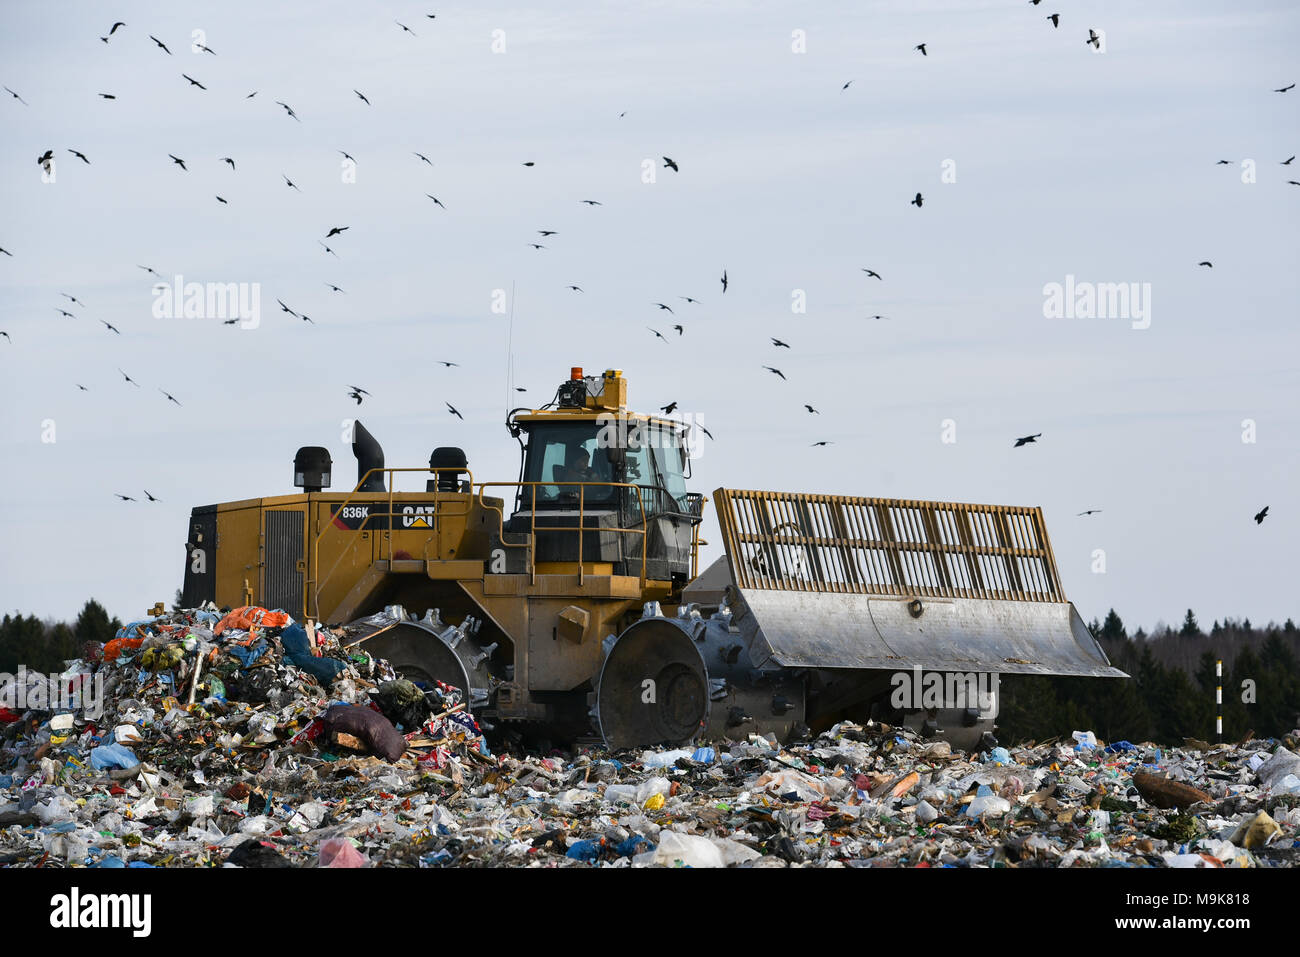 Moscow Oblast, Russia. 25 March, 2018. Bulldozer at the Yadrovo landfill site in Moscow Oblast, Russia. - Stock Image